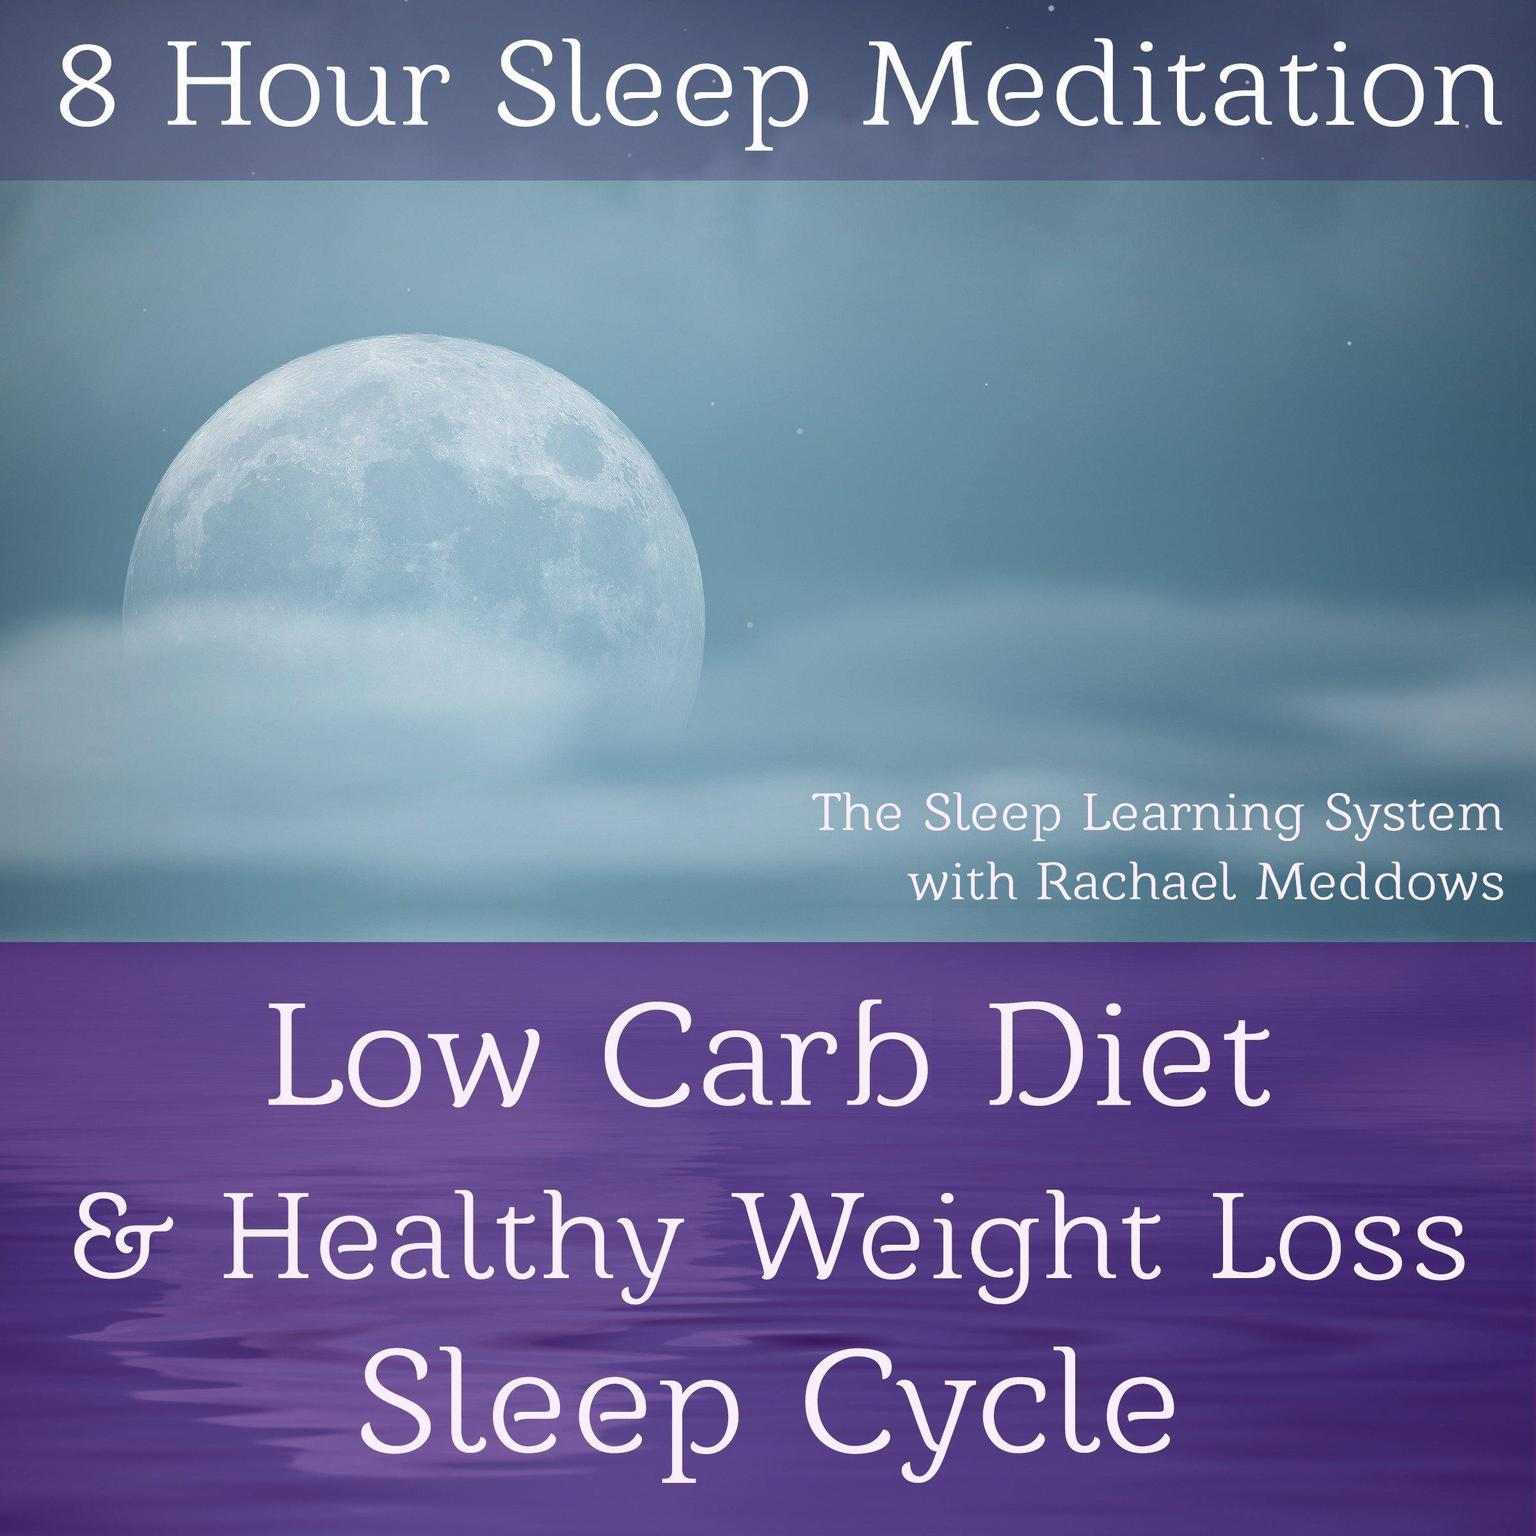 Printable 8 Hour Sleep Meditation - Low Carb Diet & Healthy Weight Loss Sleep Cycle (The Sleep Learning System with Rachael Meddows) Audiobook Cover Art